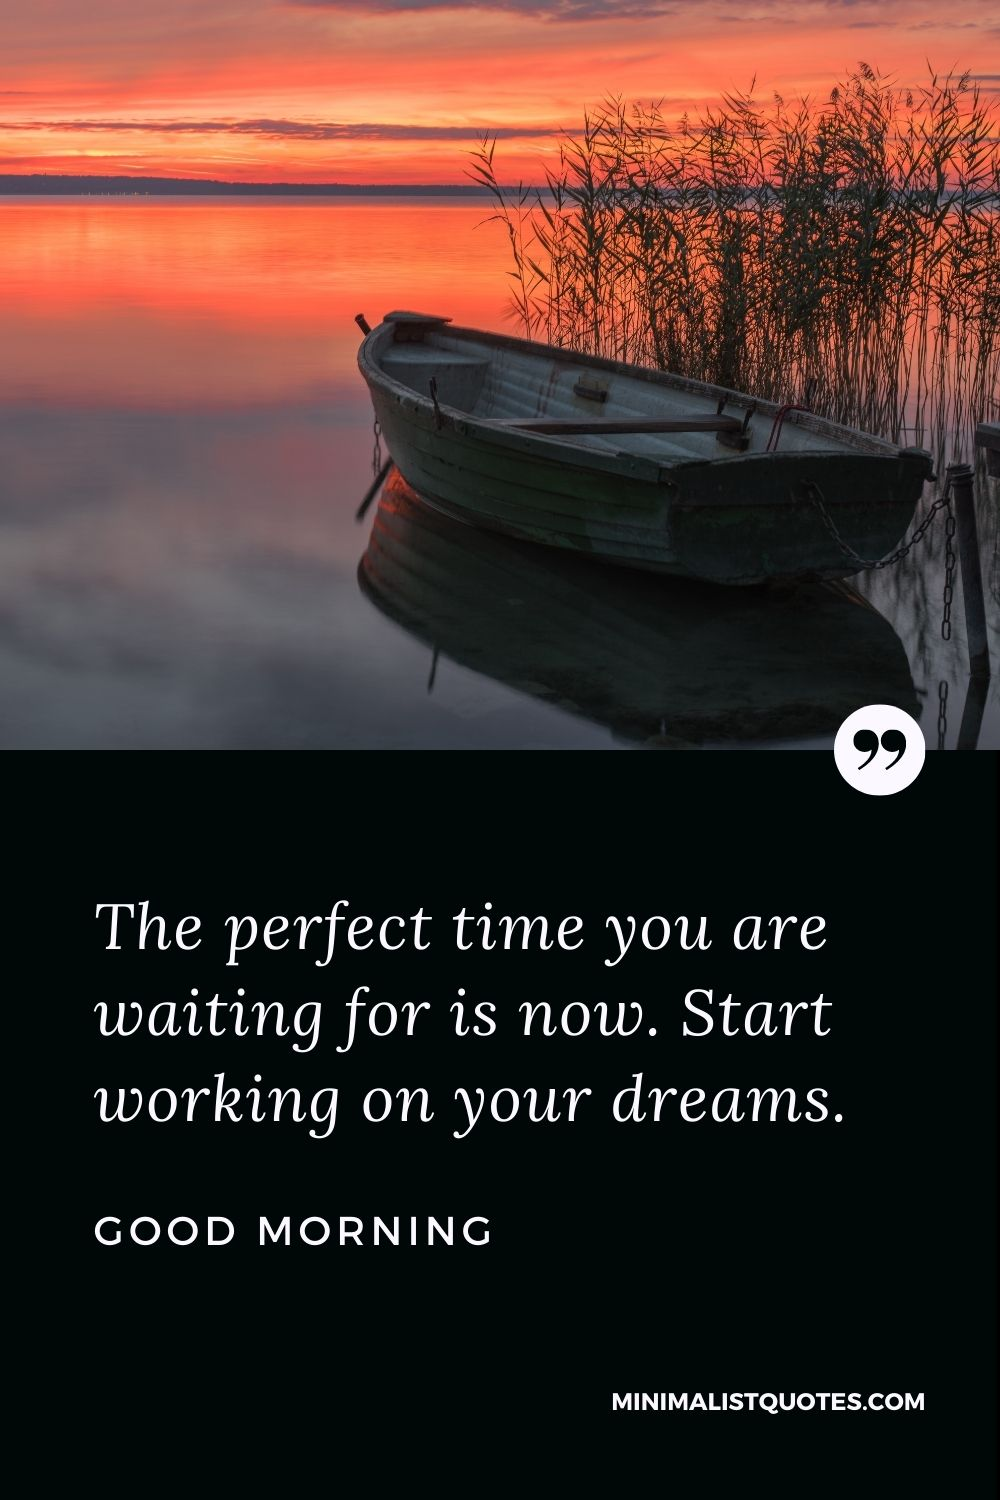 Good Morning Wish & Message With Image: The perfect time you are waiting for is now. Start working on your dreams.